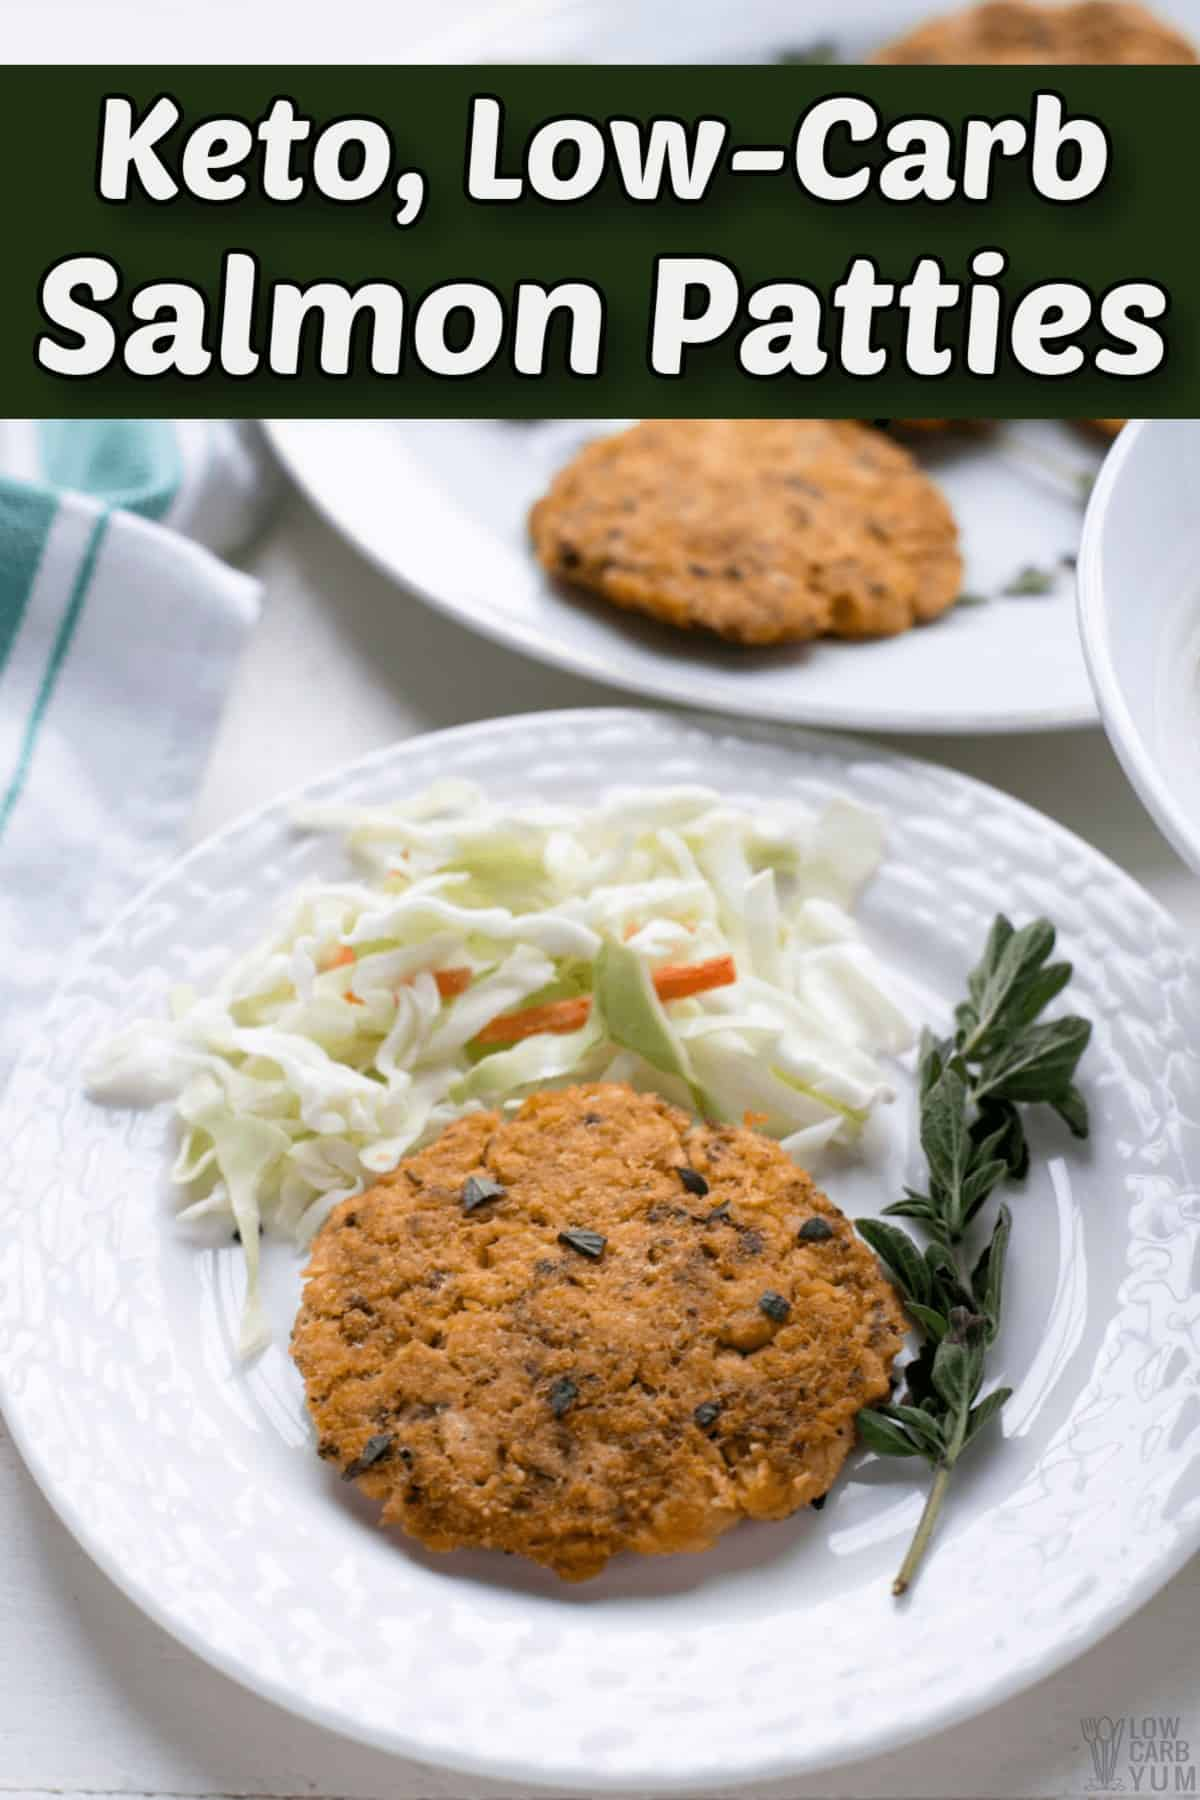 keto salmon patties with canned meat pintrest image